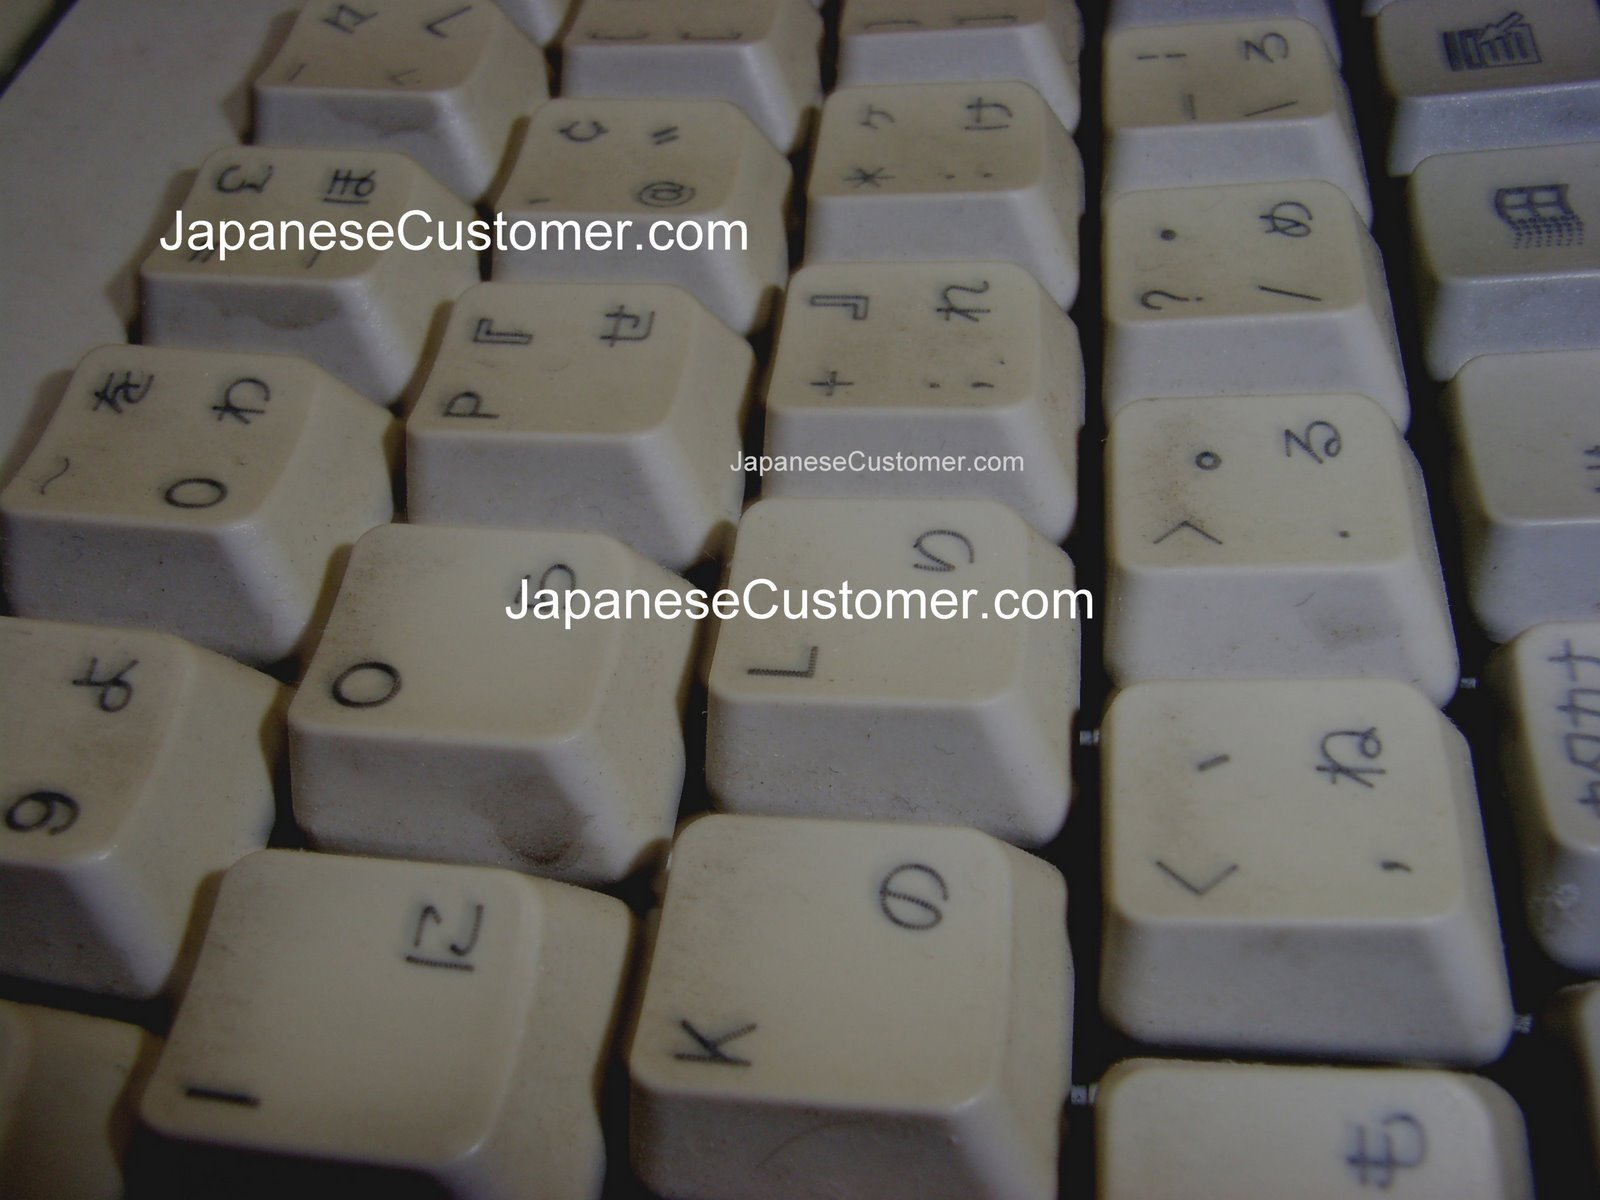 Japanese key board Copyright  2010